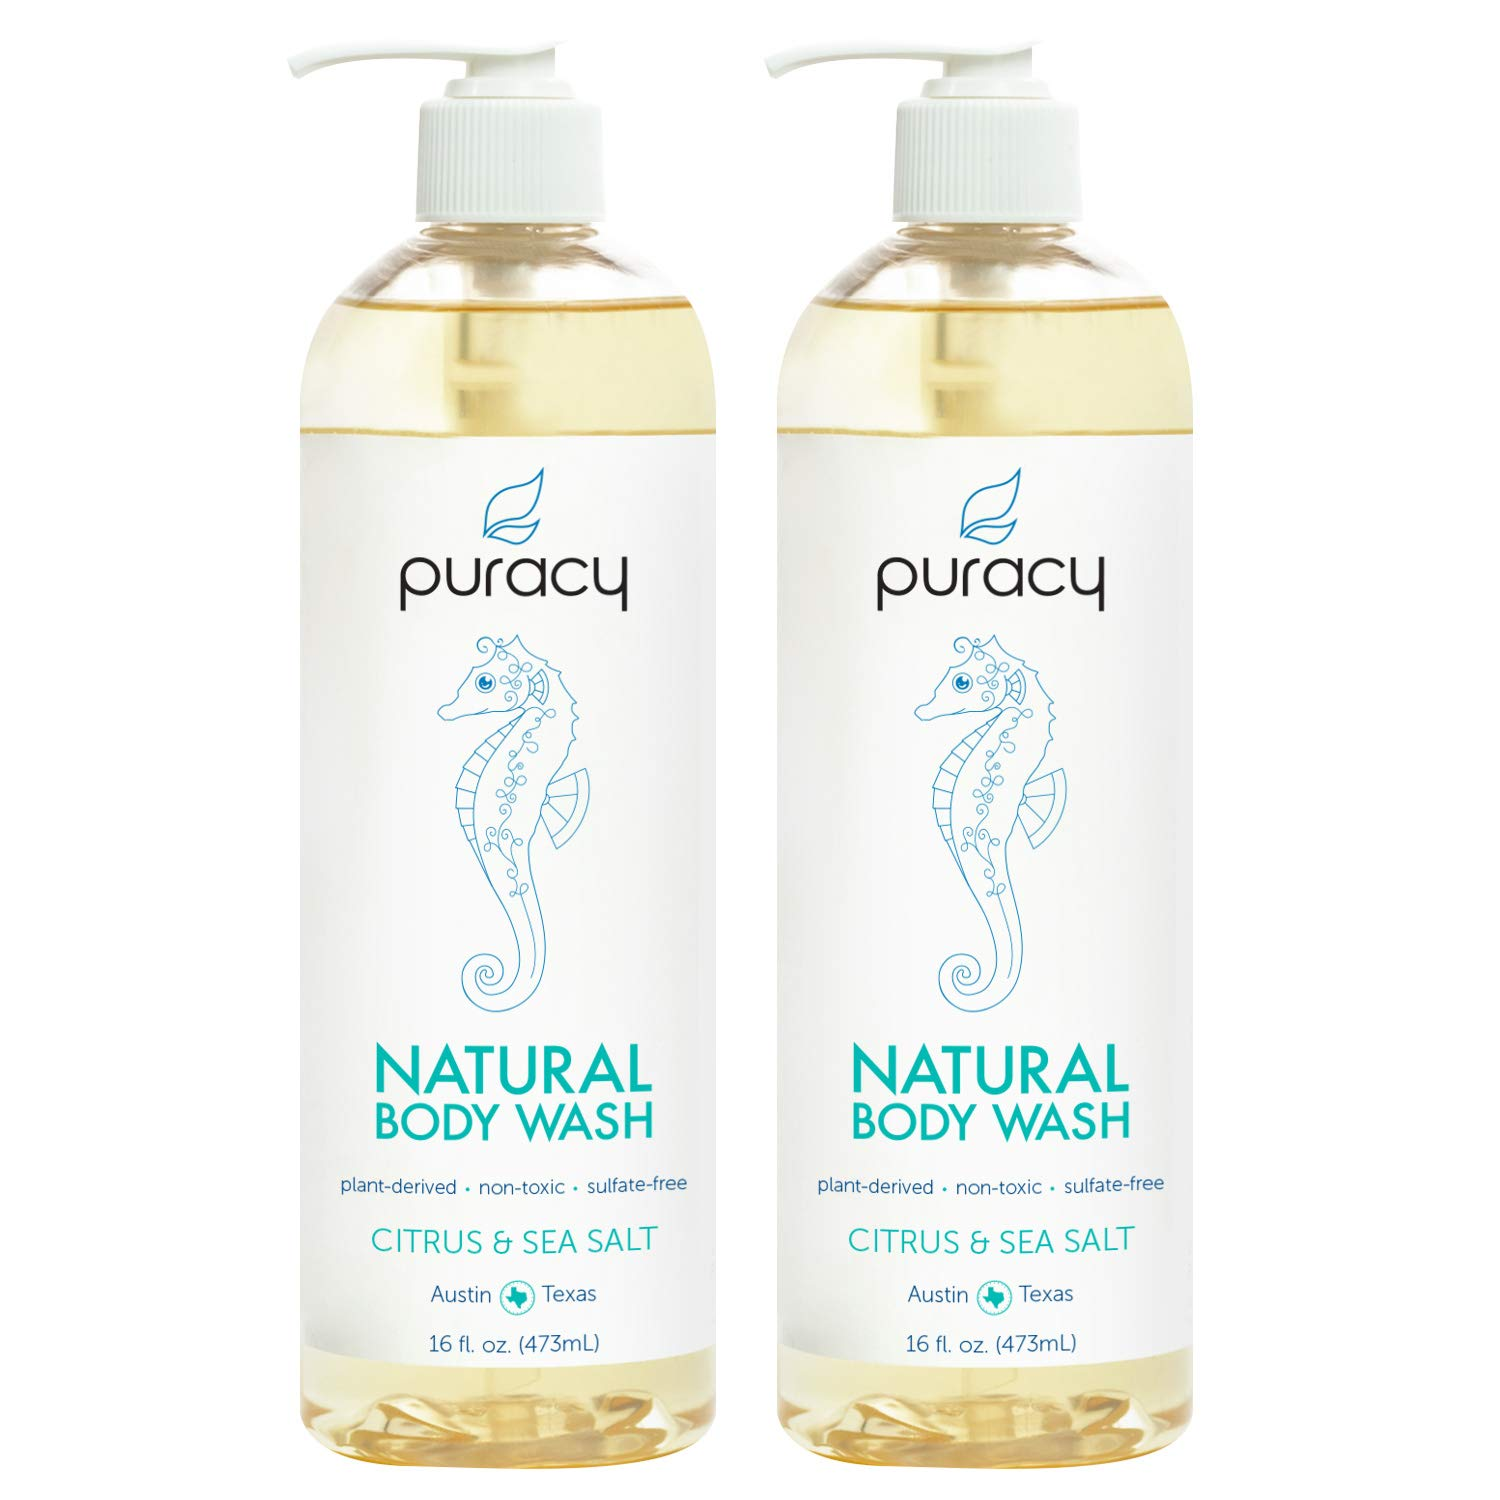 Puracy Natural Best Body Wash for Women